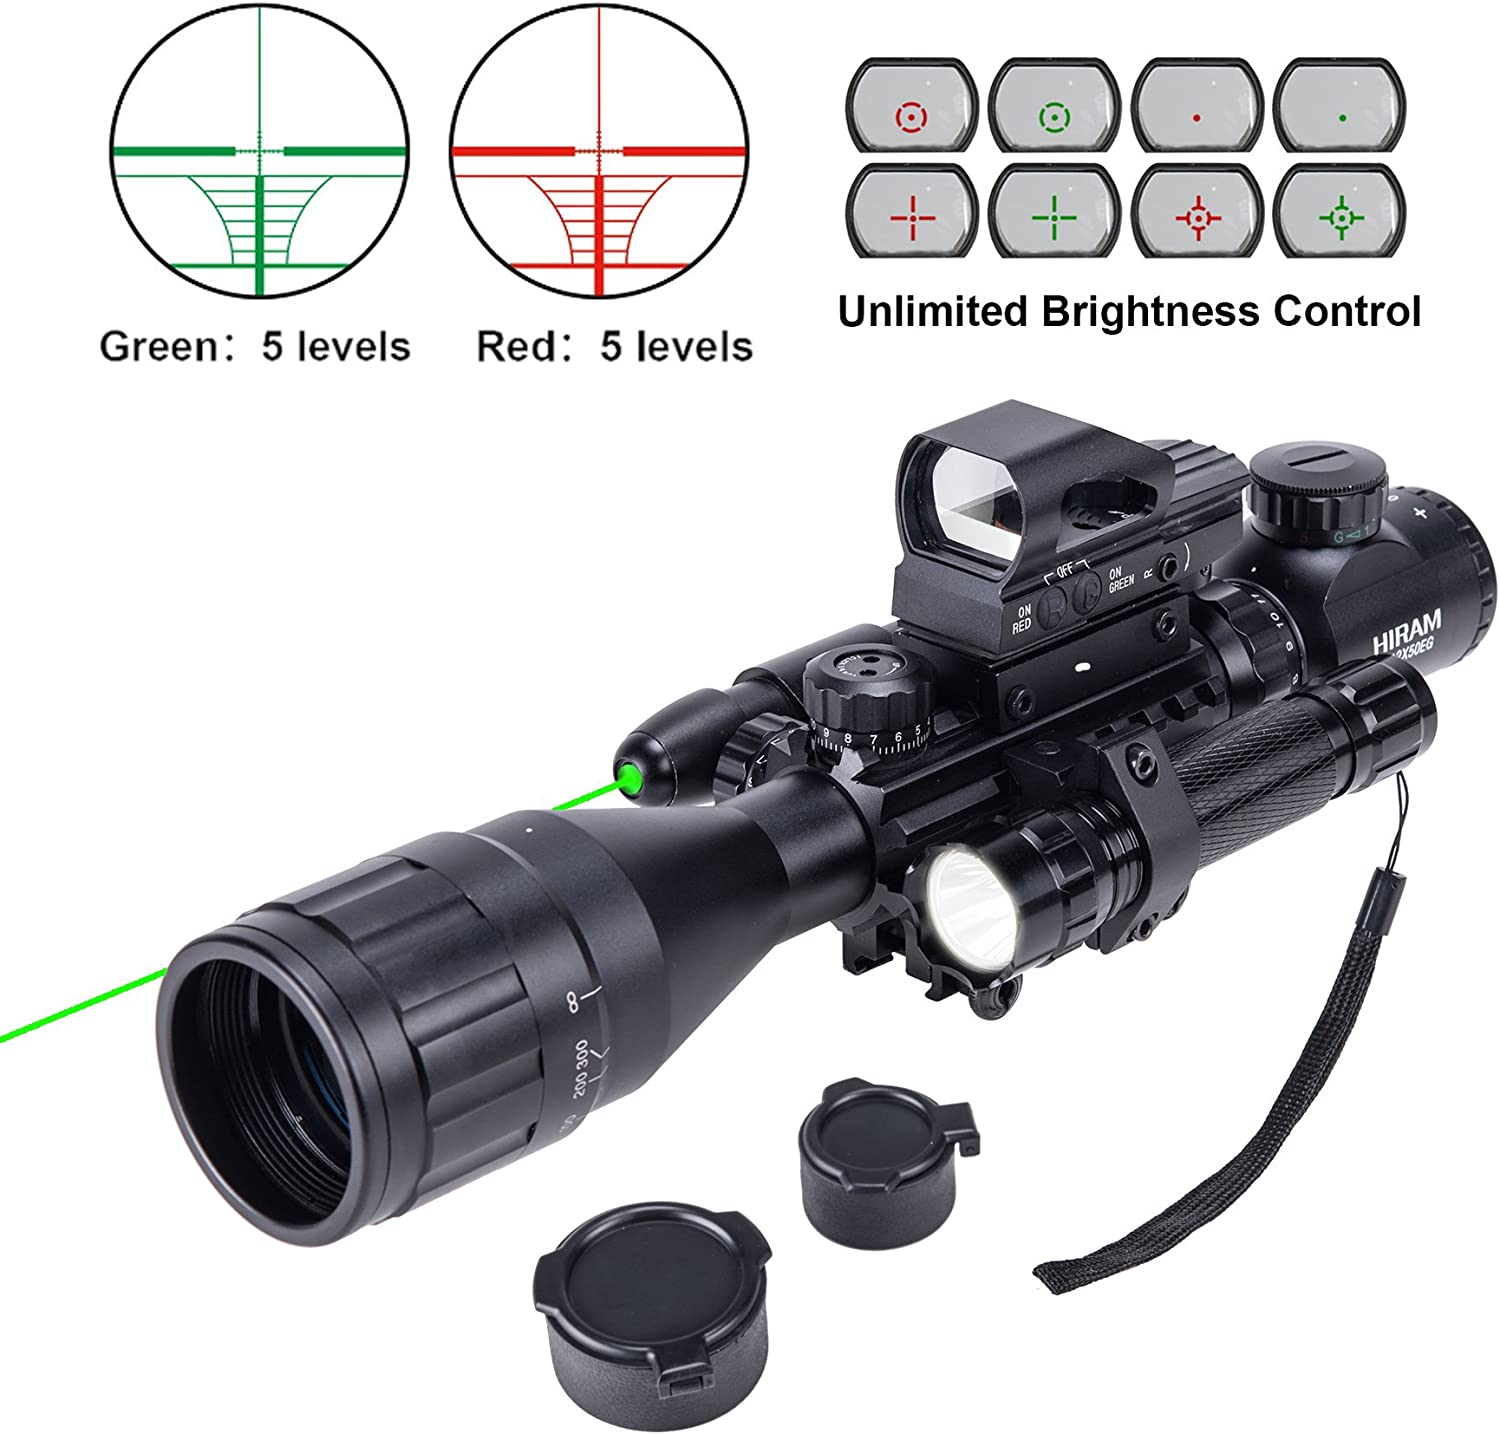 HIRAM 4-16×50 AO Rifle Scope Combo with Green Laser, Reflex Sight, and 5 Brightness Modes Flashlight